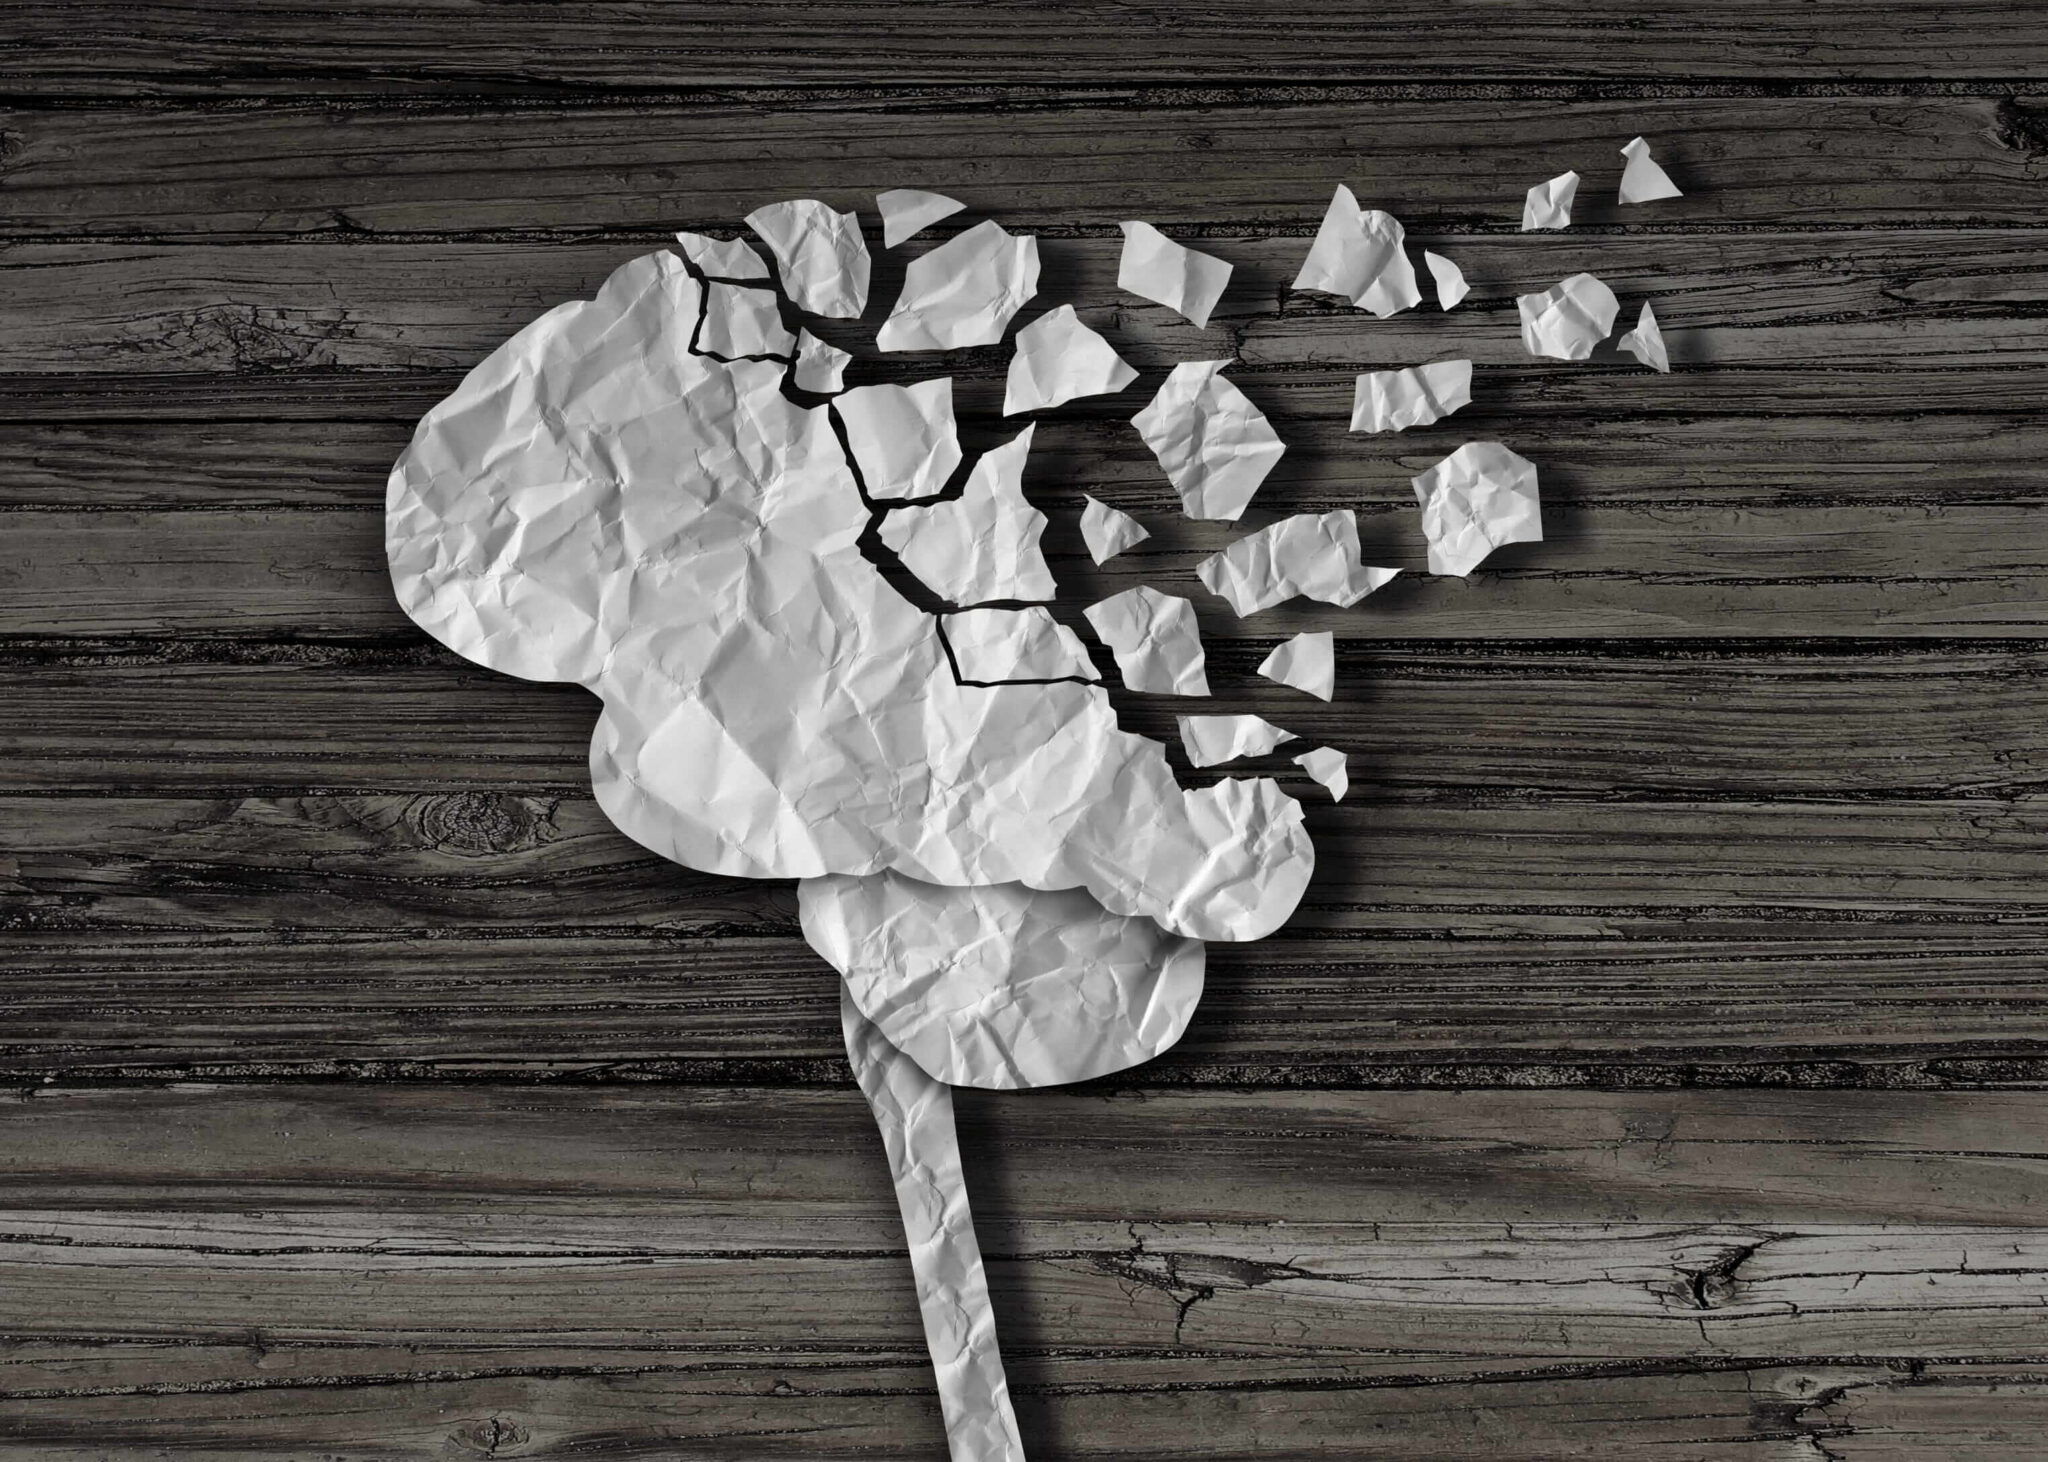 brain icon made of brittle material with pieces broken off